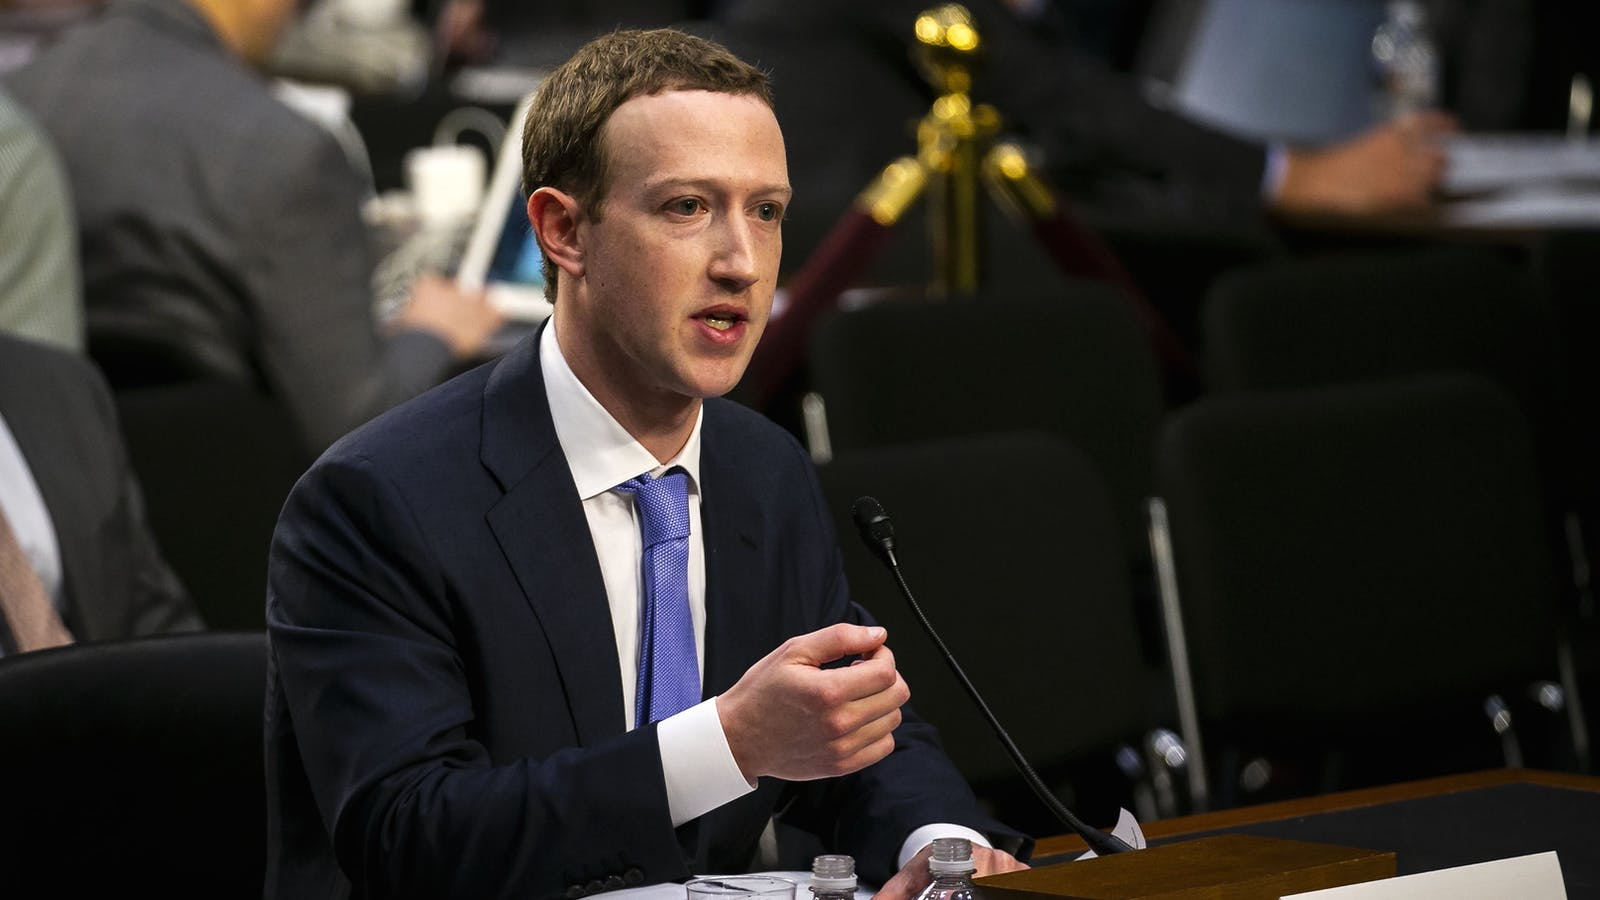 Facebook CEO Mark Zuckerberg testifying before Congress on Tuesday. Photo by Bloomberg.